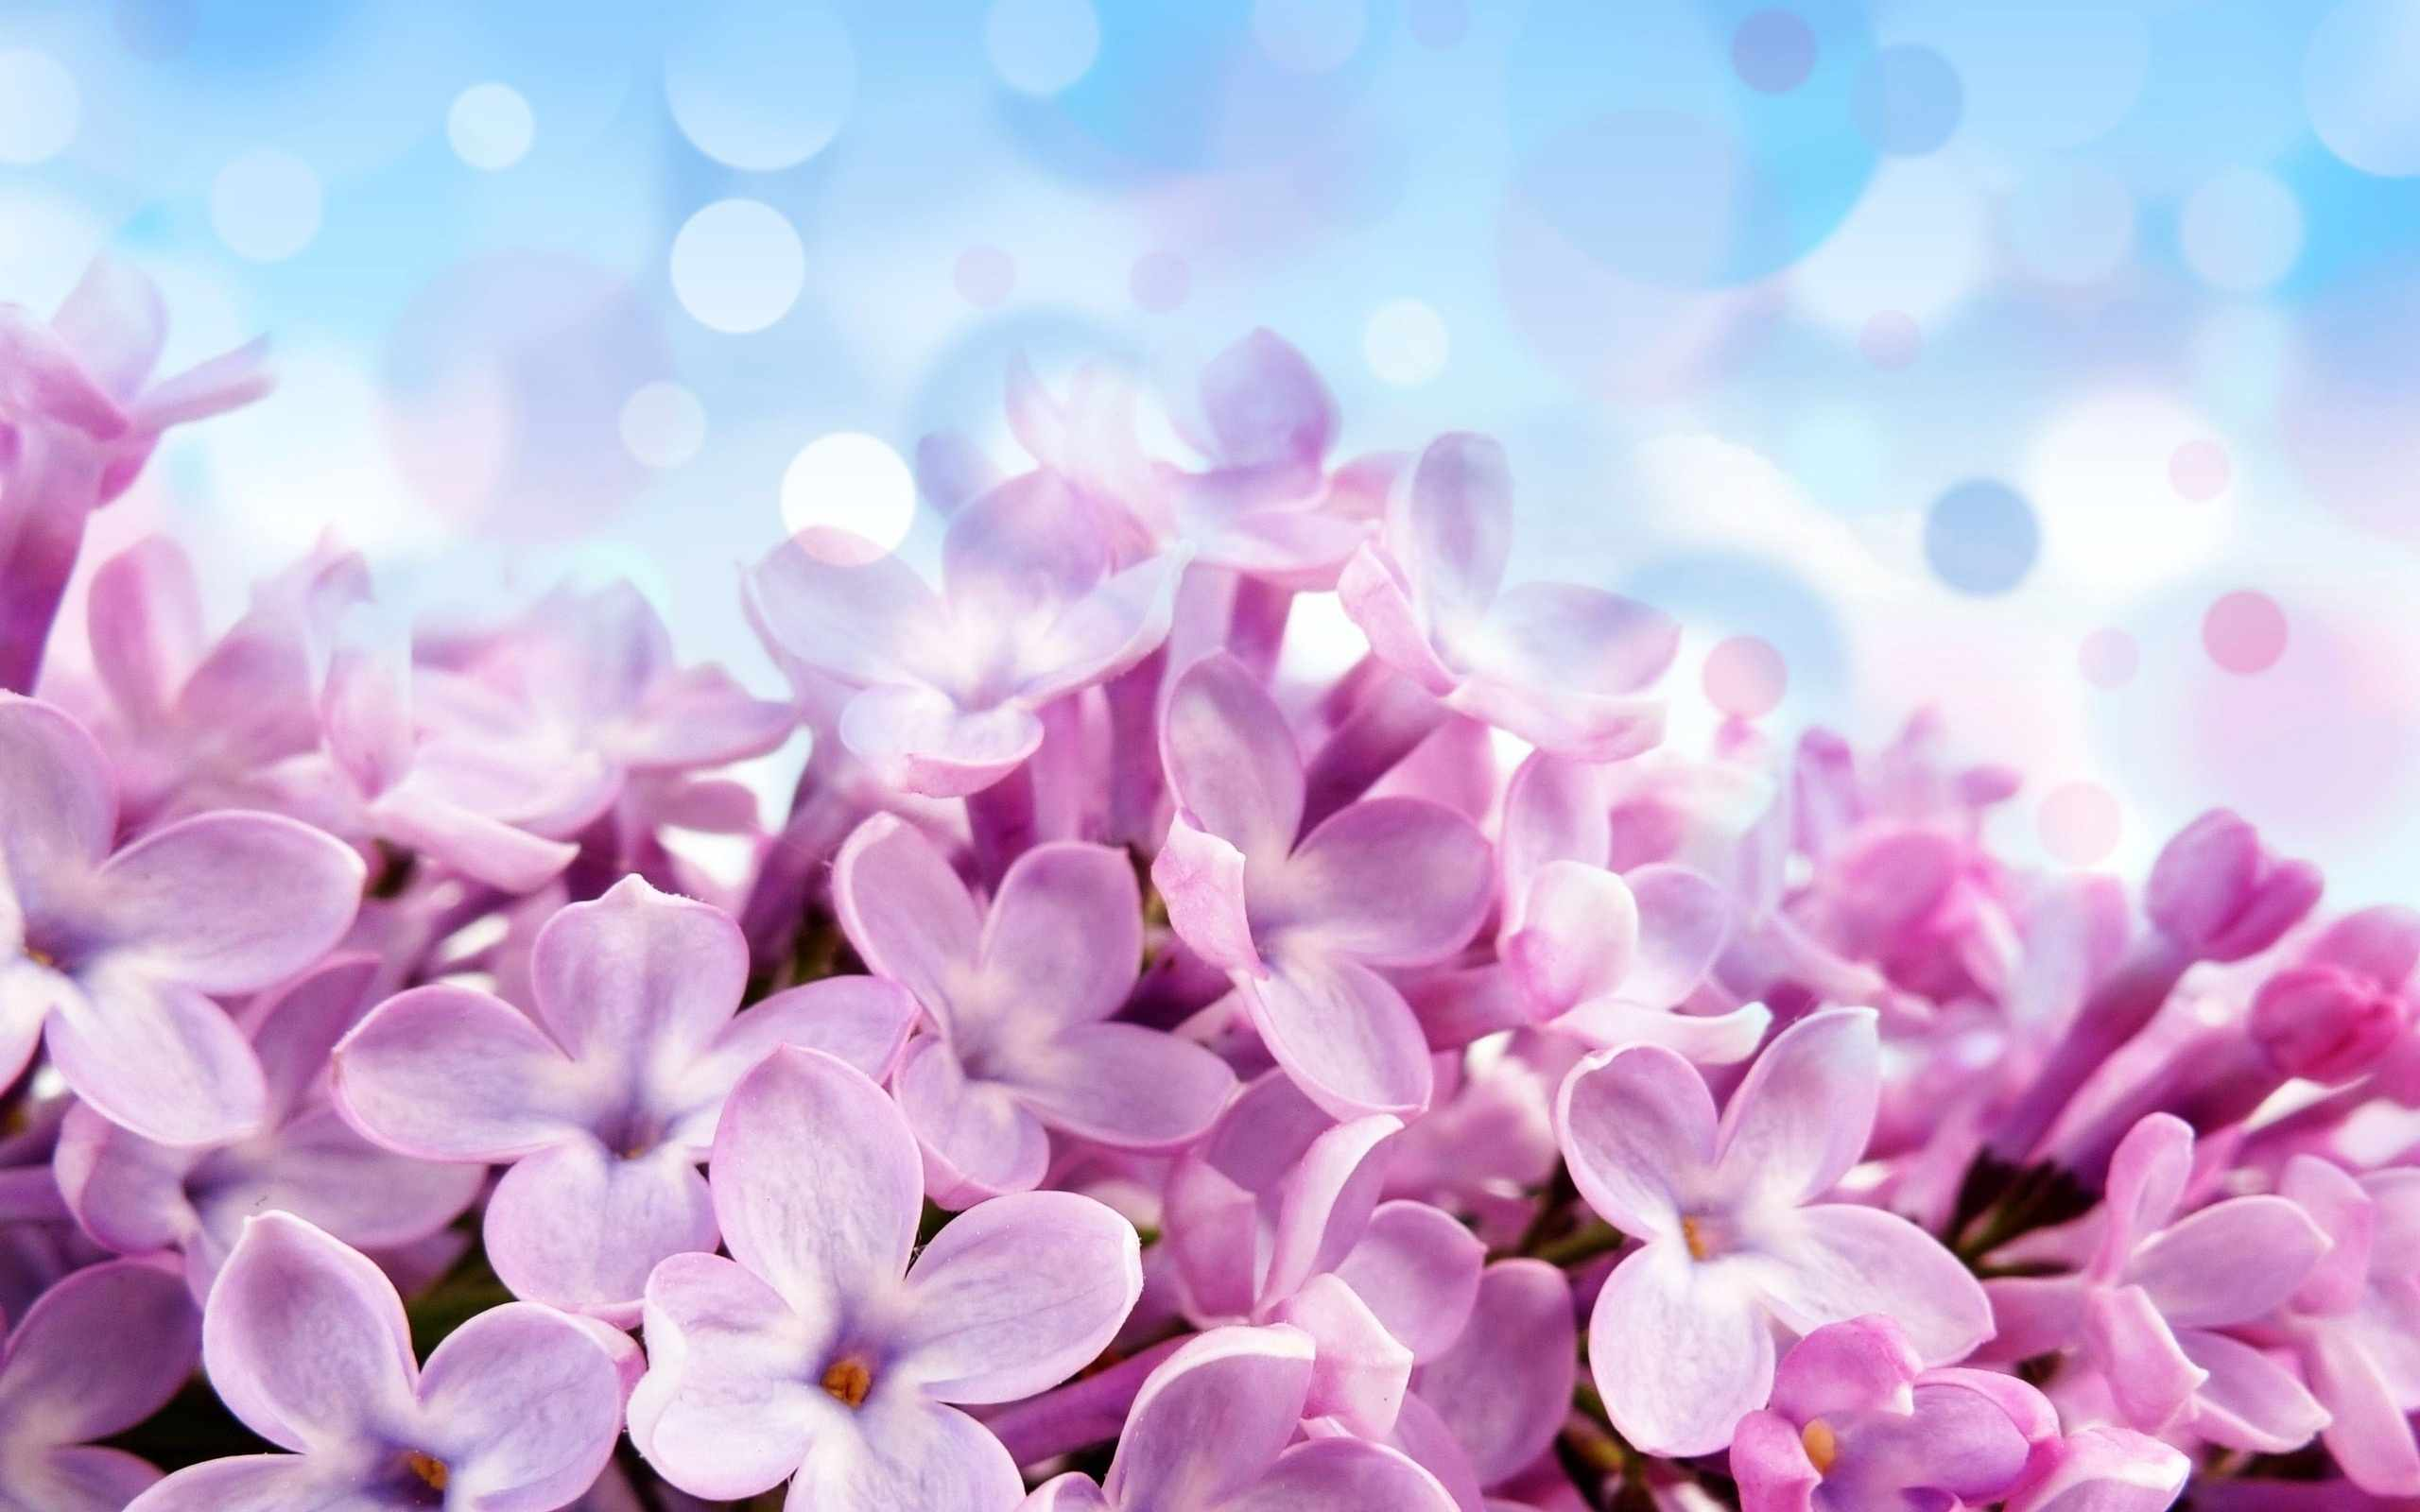 22 beautiful flower wallpapers purple lilac flowers with a blue background hd wallpapers mightylinksfo